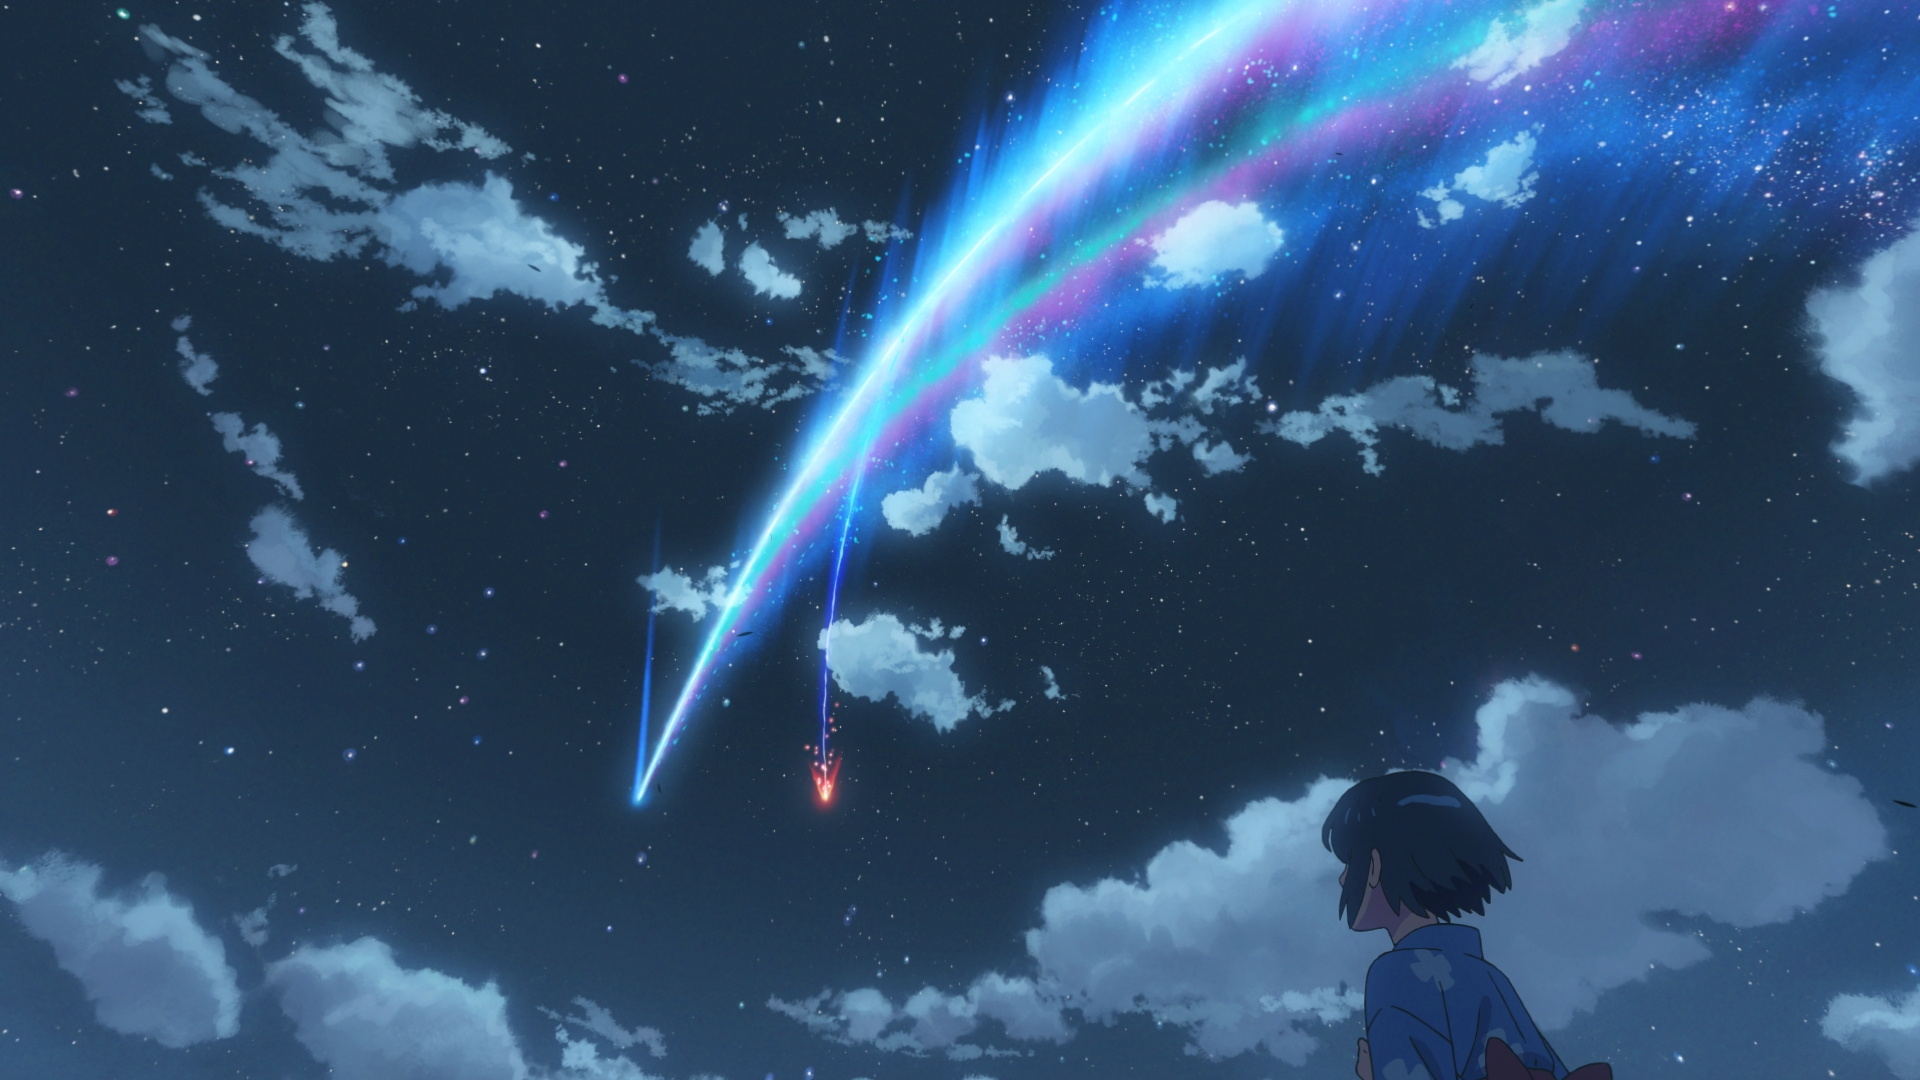 Anime Fans Your Name Is Coming To The Big Screen Frolic Hawaii